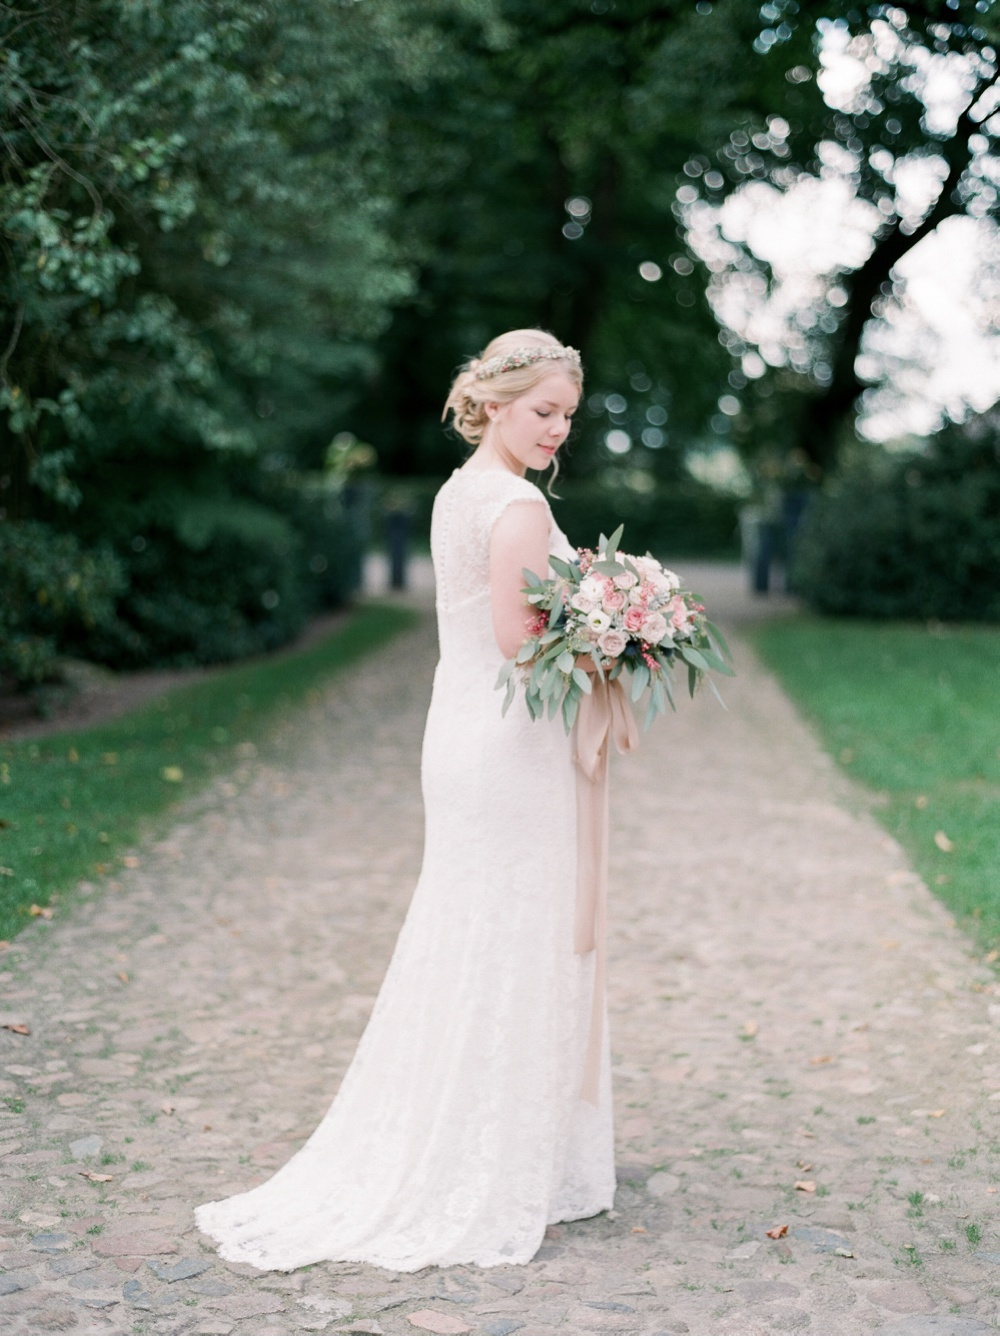 Paris_Provence_Destination_Wedding_Photographer©MadalinaSheldon_0033.jpg